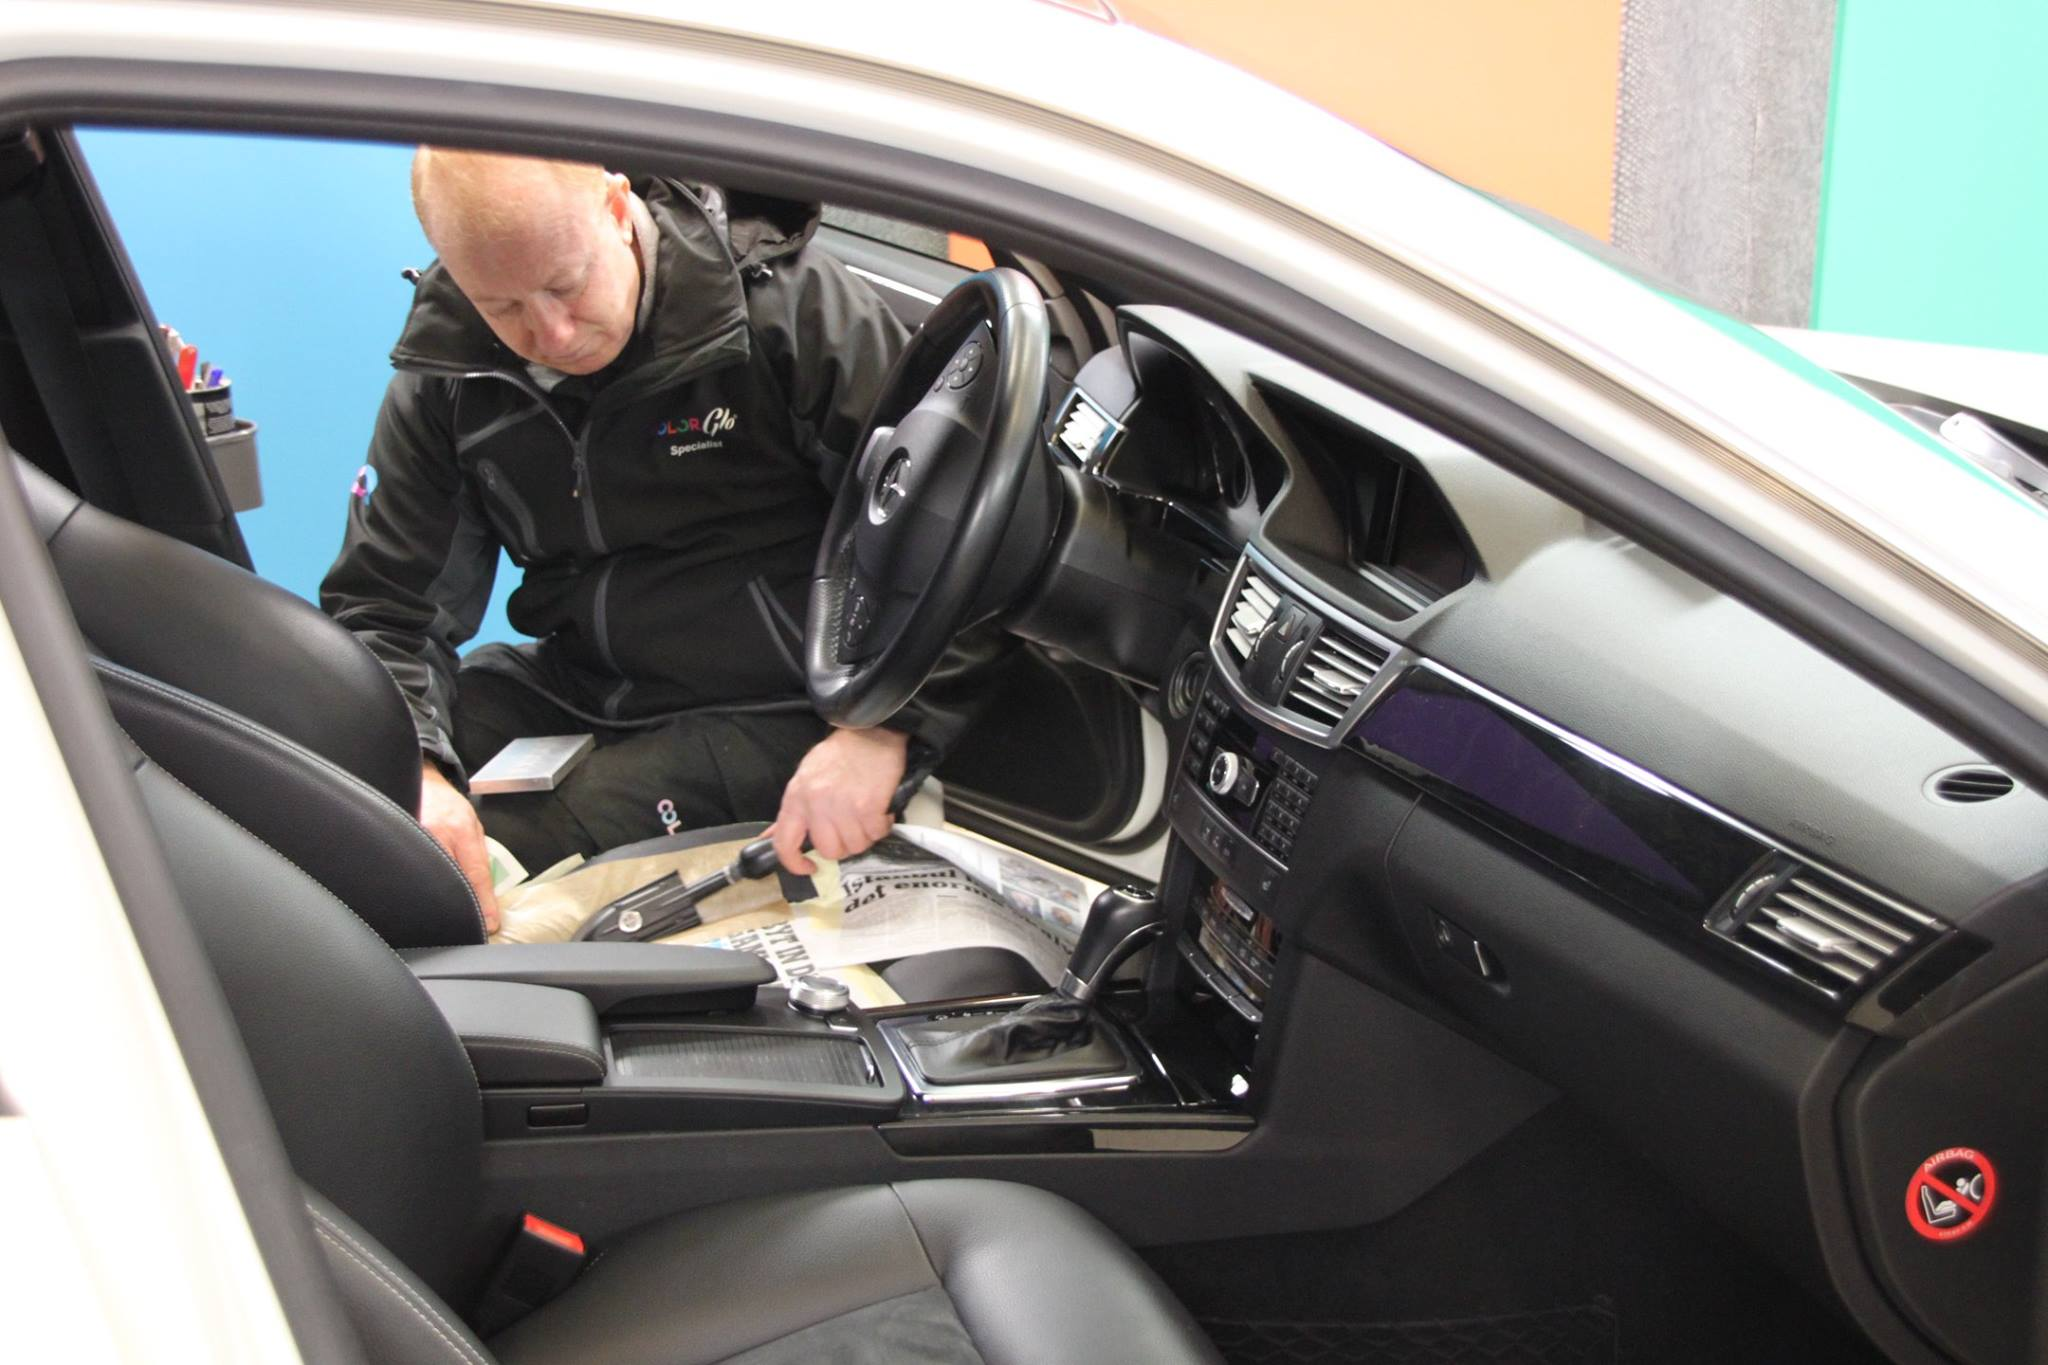 Color Glo specialists work to repair worn auto interiors and bring them back to life.